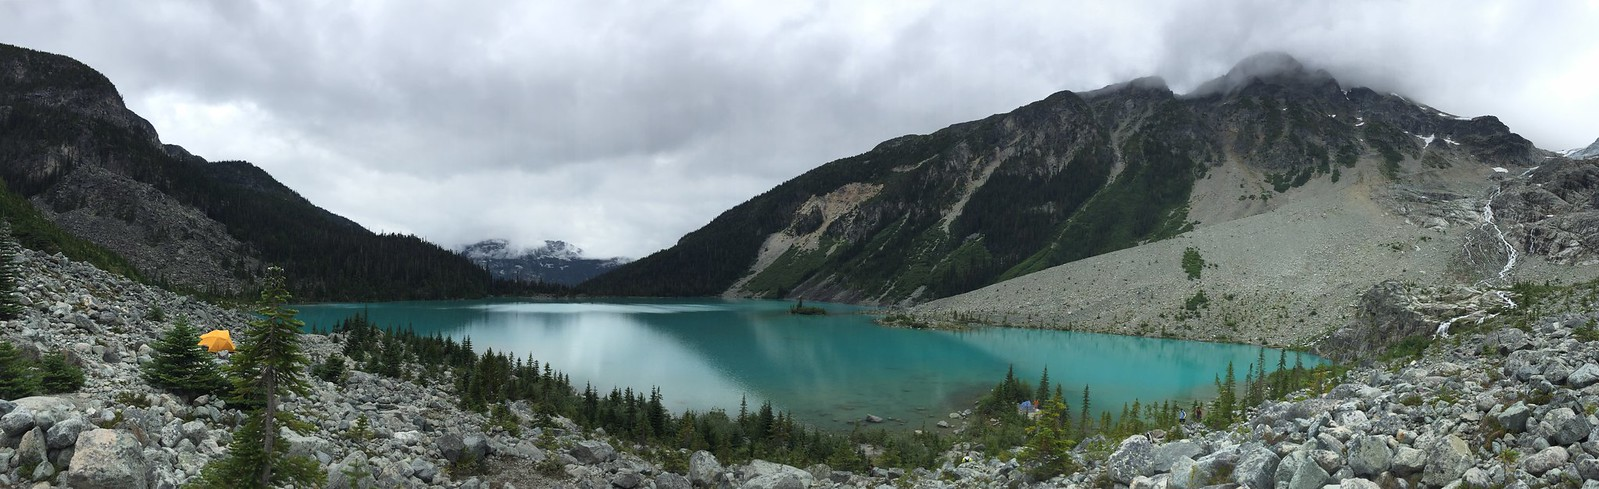 Travel Guide: Vancouver - Joffre Lakes